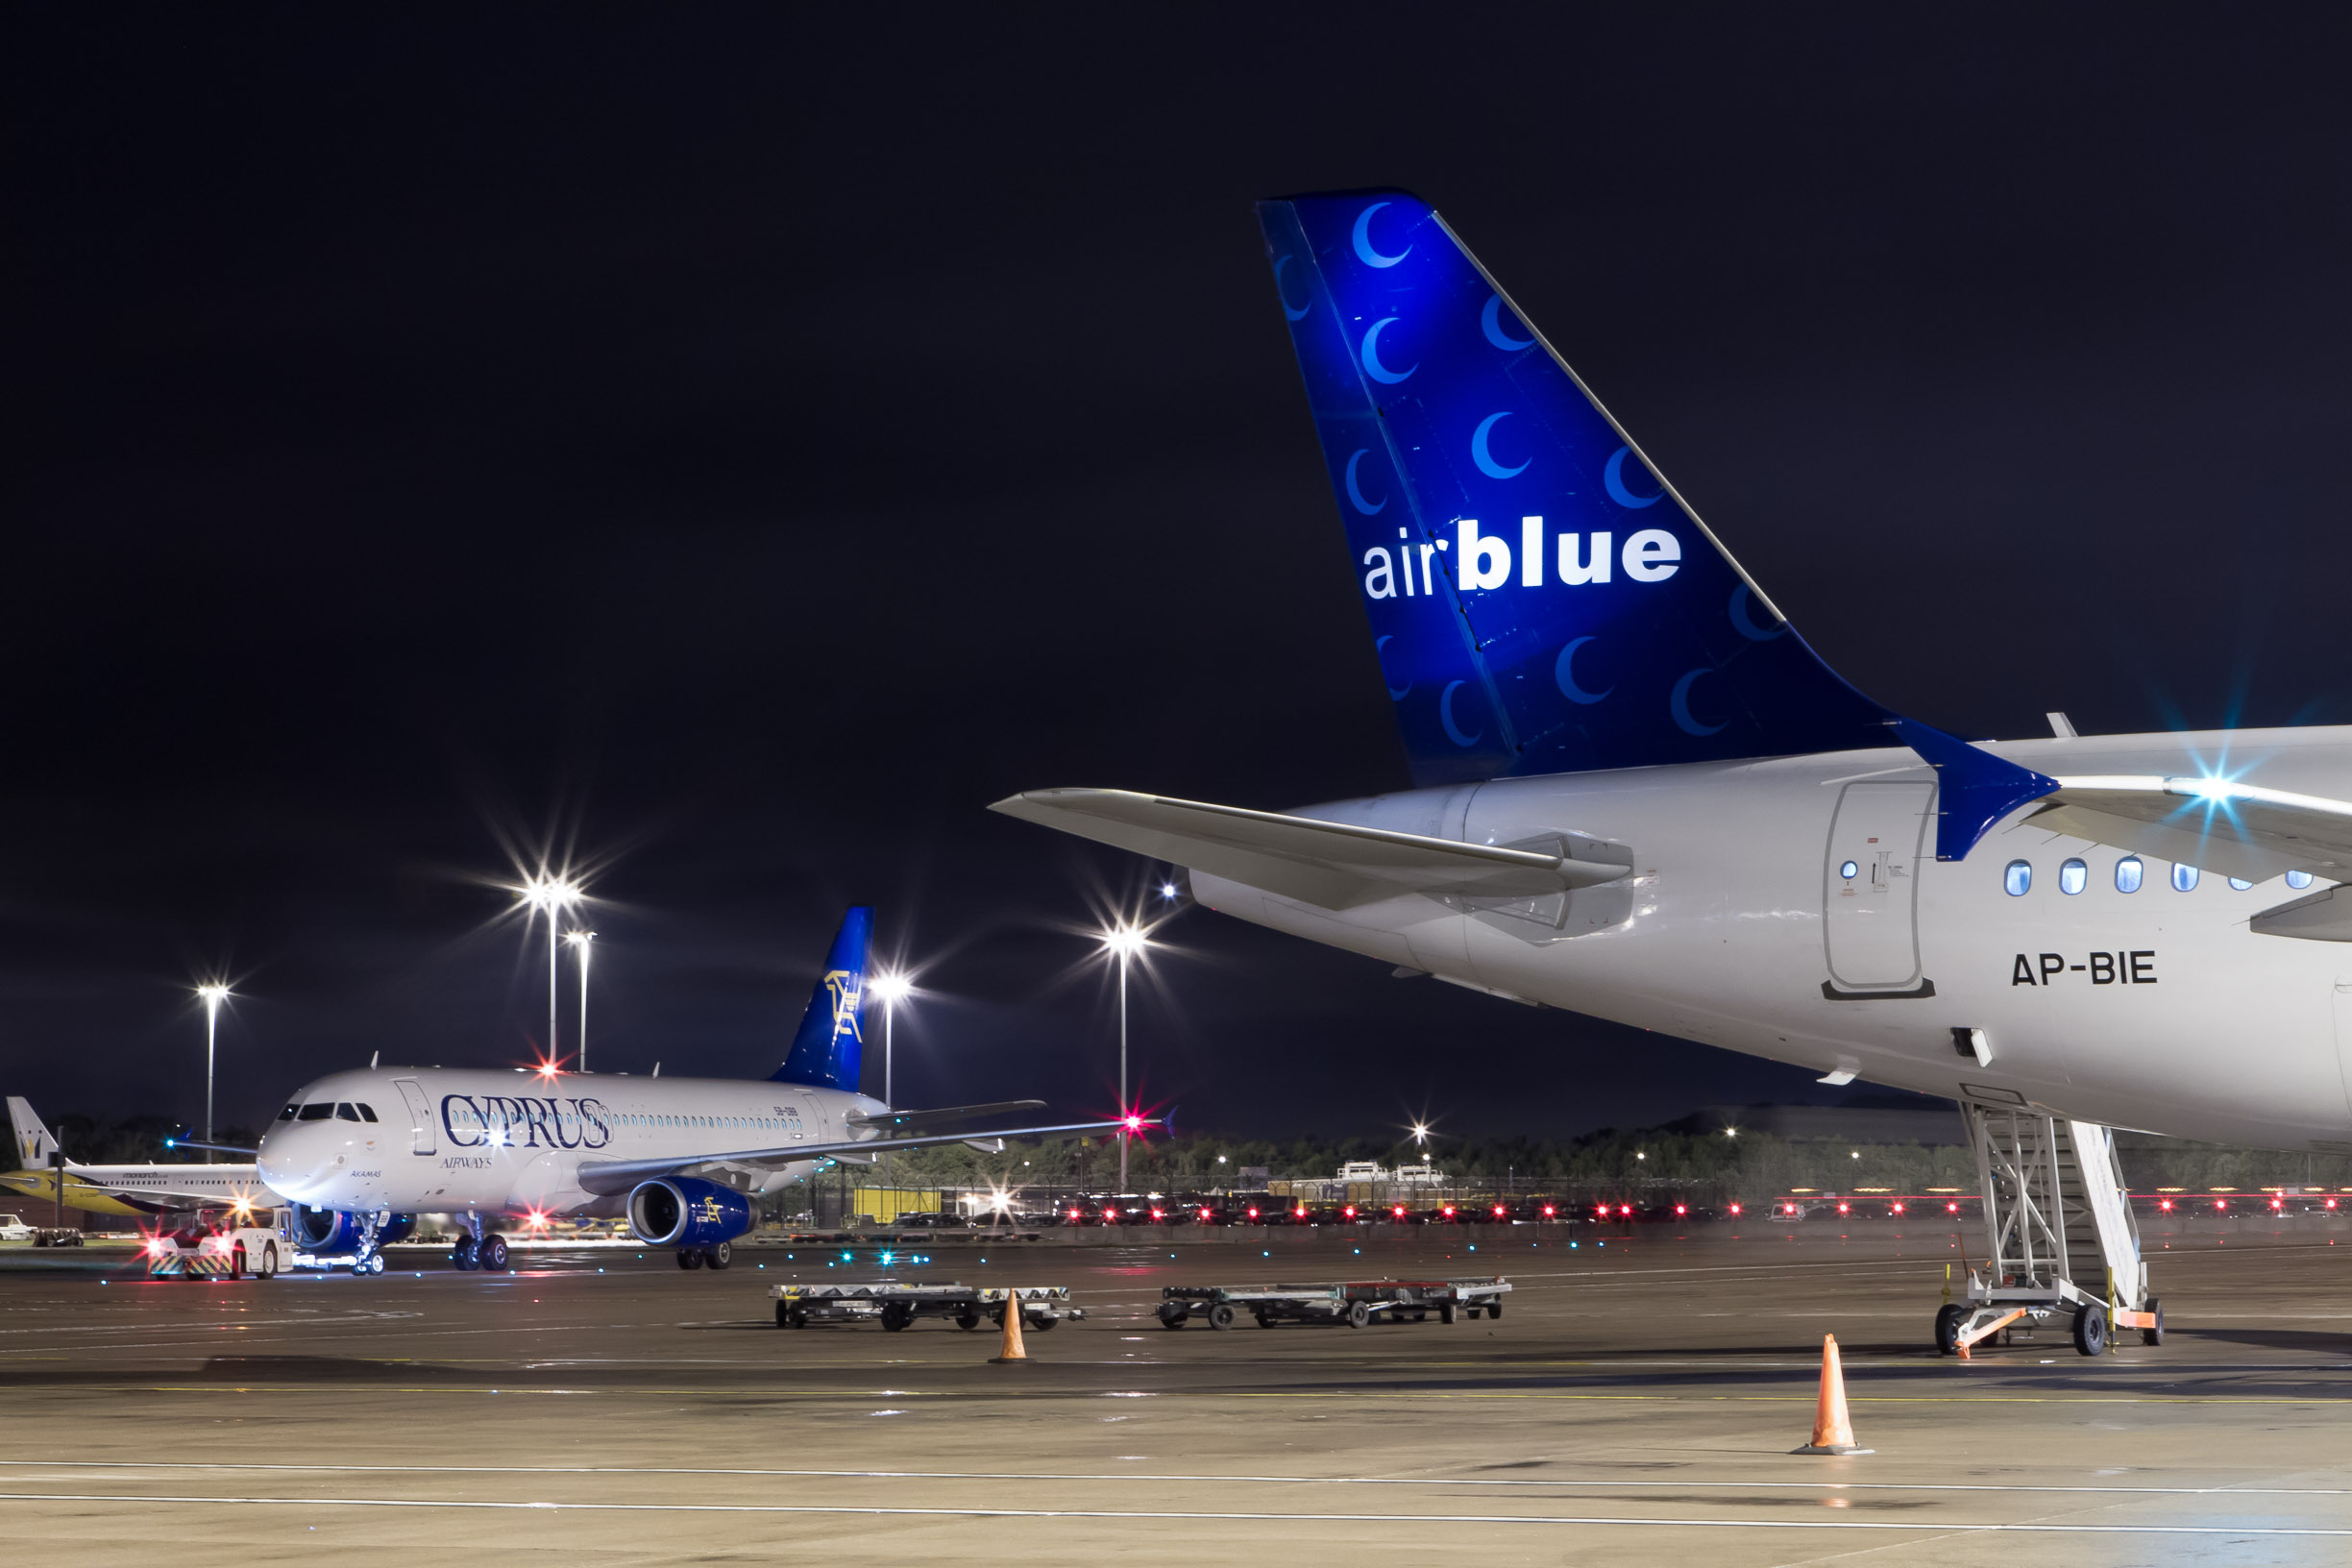 Airblue and Cyprus Airbus at night